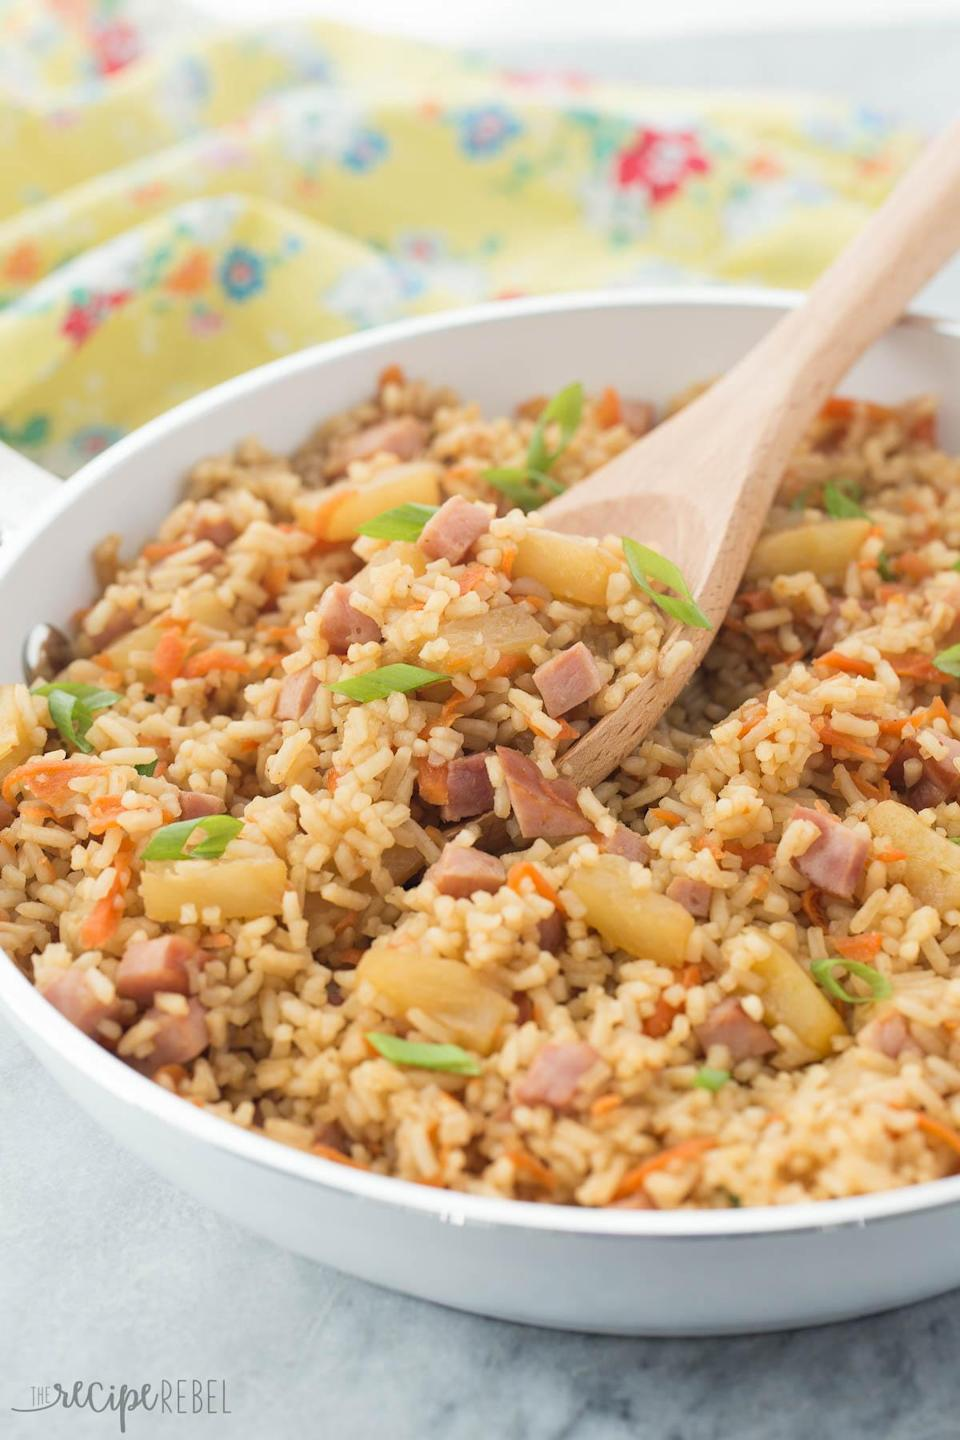 """<p>This Hawaiian inspired rice isn't just quick and simple, it's healthy too! Savoury cubes of ham and sweet chunks of pineapple adds a punch of flavour, and since this dish comes together without frying, it's a healthy choice too. <i>[Image : The Recipe Rebel]</i></p><p>Get the recipe from: <b><a href=""""http://www.thereciperebel.com/20-minute-ham-and-pineapple-rice/"""" rel=""""nofollow noopener"""" target=""""_blank"""" data-ylk=""""slk:The Recipe Rebel"""" class=""""link rapid-noclick-resp"""">The Recipe Rebel</a></b></p>"""